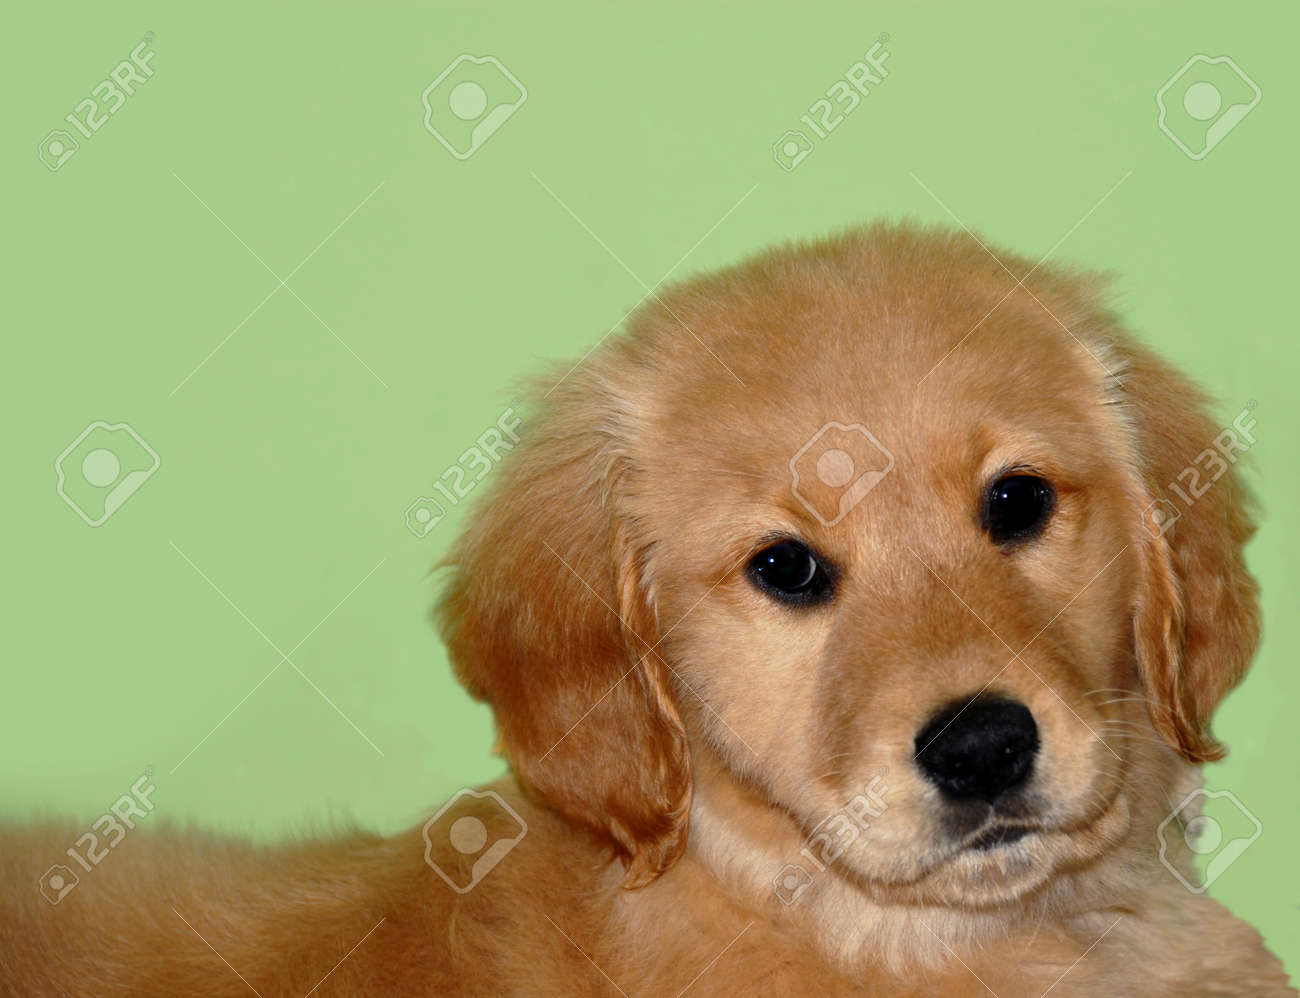 Small Golden Retriever Puppy Portrait Over Light Green Background Stock Photo Picture And Royalty Free Image Image 9259574